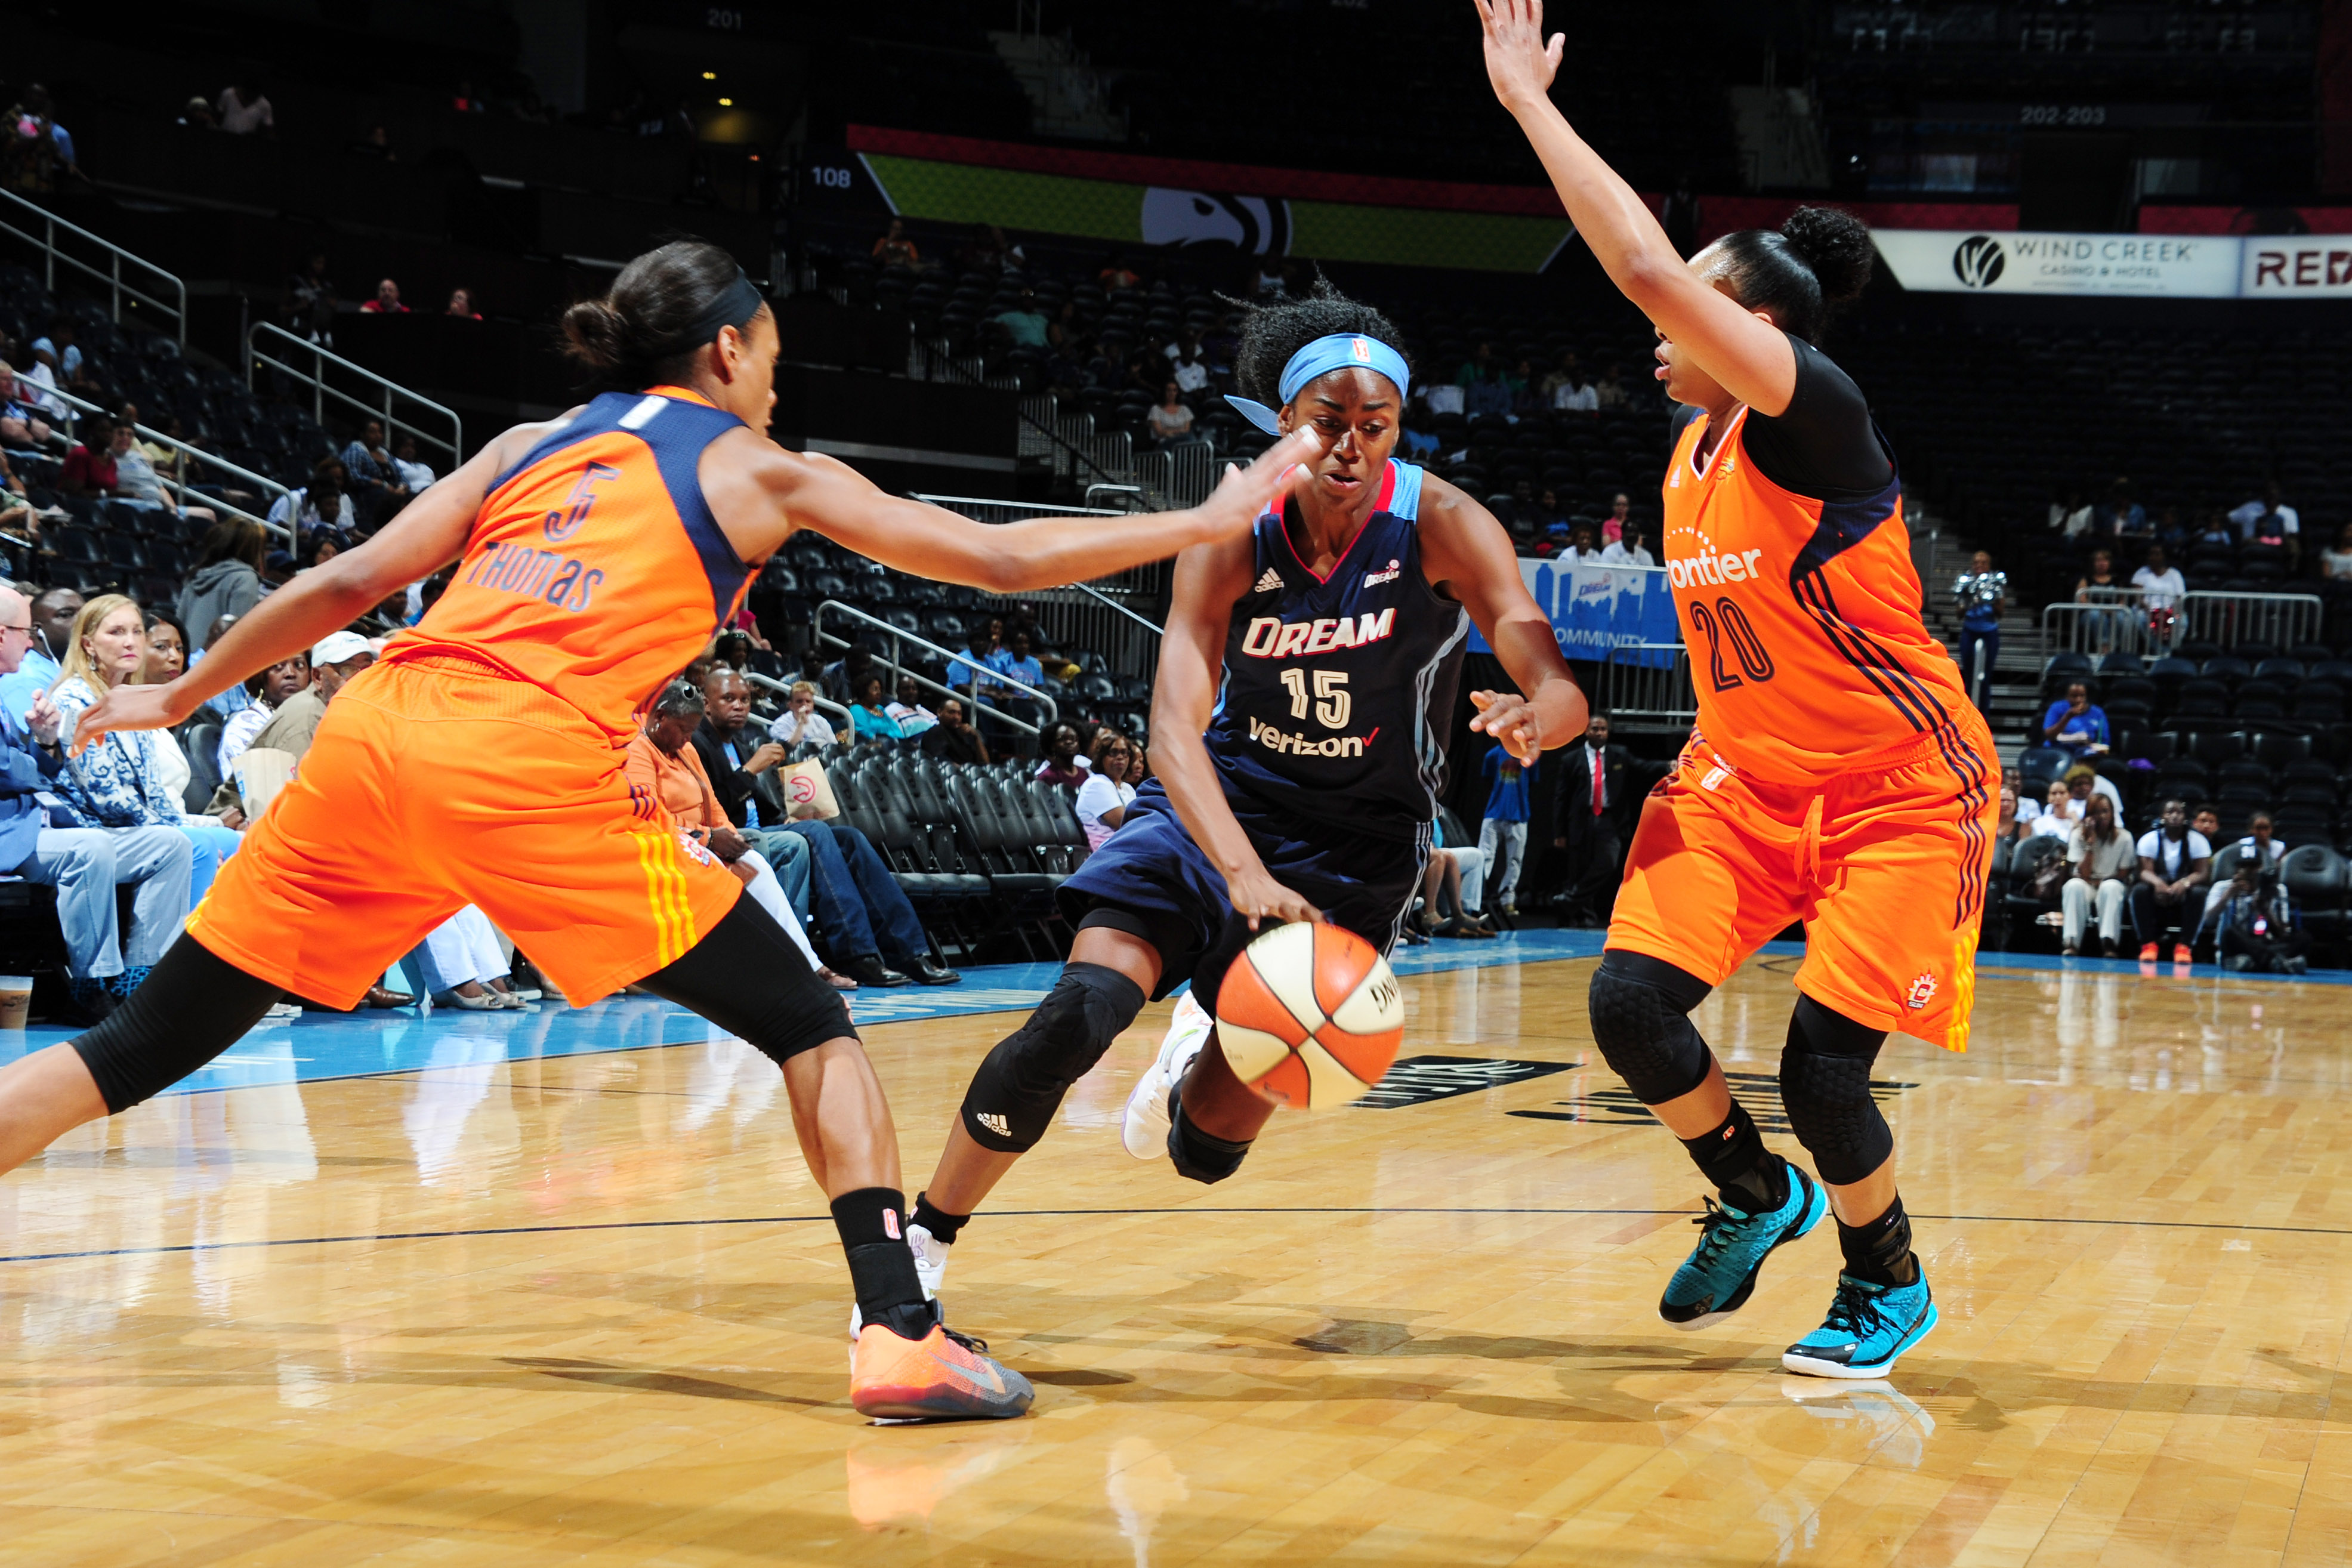 ATLANTA, GA - JUNE 12: Tiffany Hayes #15 of the Atlanta Dream drives to the basket against the Connecticut Sun during the game on June 12, 2016 at Philips Arena in Atlanta, Georgia. NOTE TO USER: User expressly acknowledges and agrees that, by downloading and or using this Photograph, user is consenting to the terms and conditions of the Getty Images License Agreement. Mandatory Copyright Notice: Copyright 2016 NBAE (Photo by Scott Cunningham/NBAE via Getty Images)